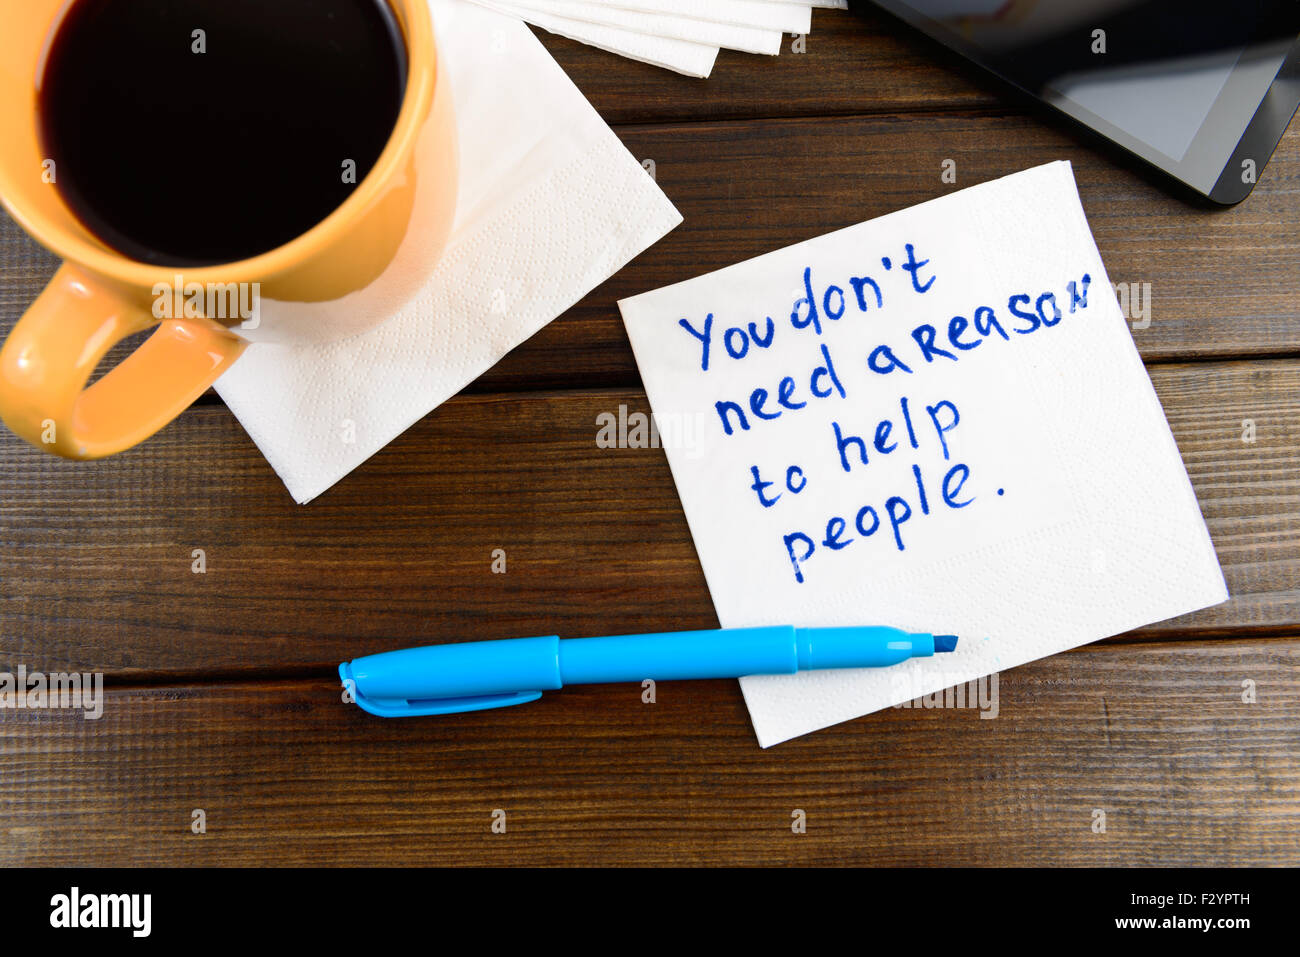 napkin sketch 'Your don't need reason to help people' on cafe napkin - Stock Image